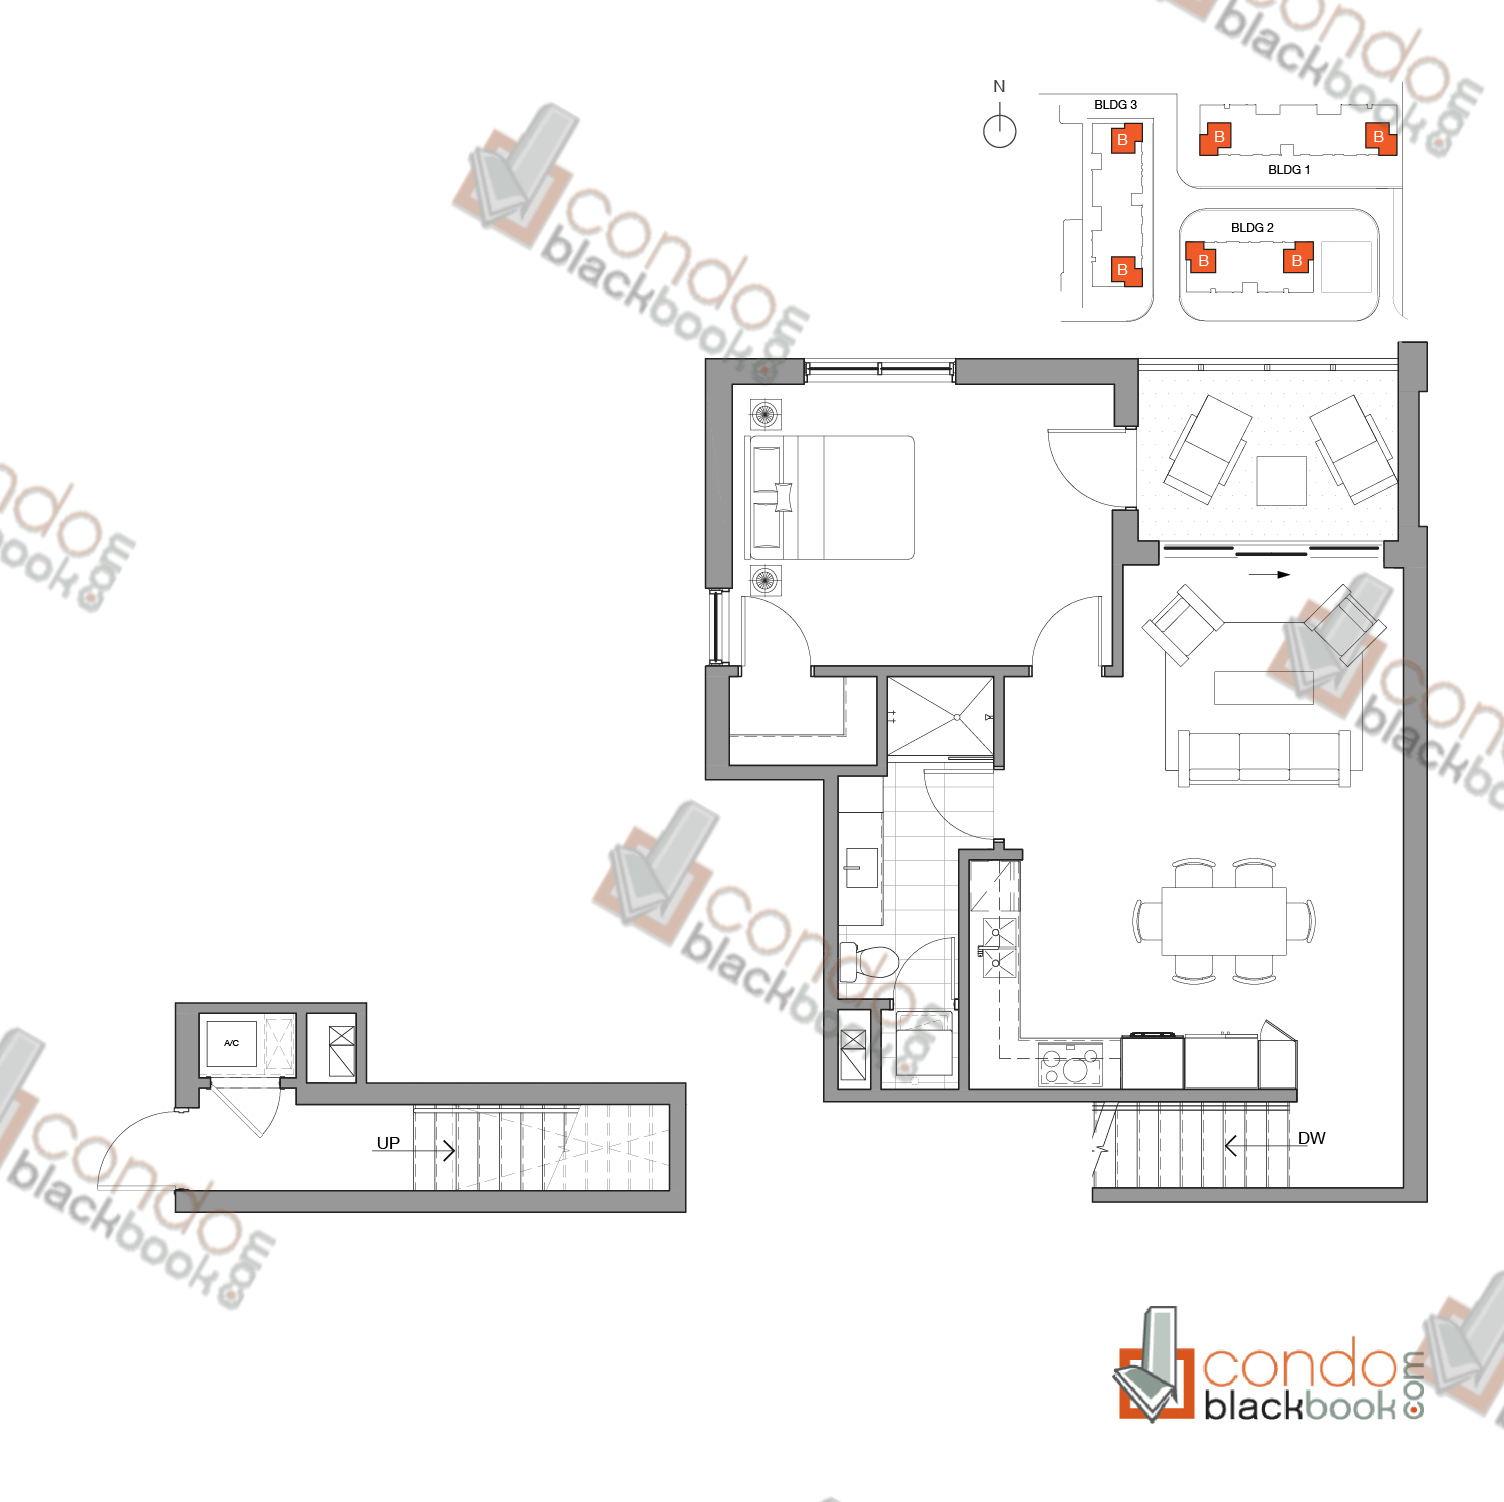 Floor plan for One Bay Edgewater Miami, model Residence B, line 102, 112, 202, 209, 302, 314, 1/1 bedrooms, 877 sq ft